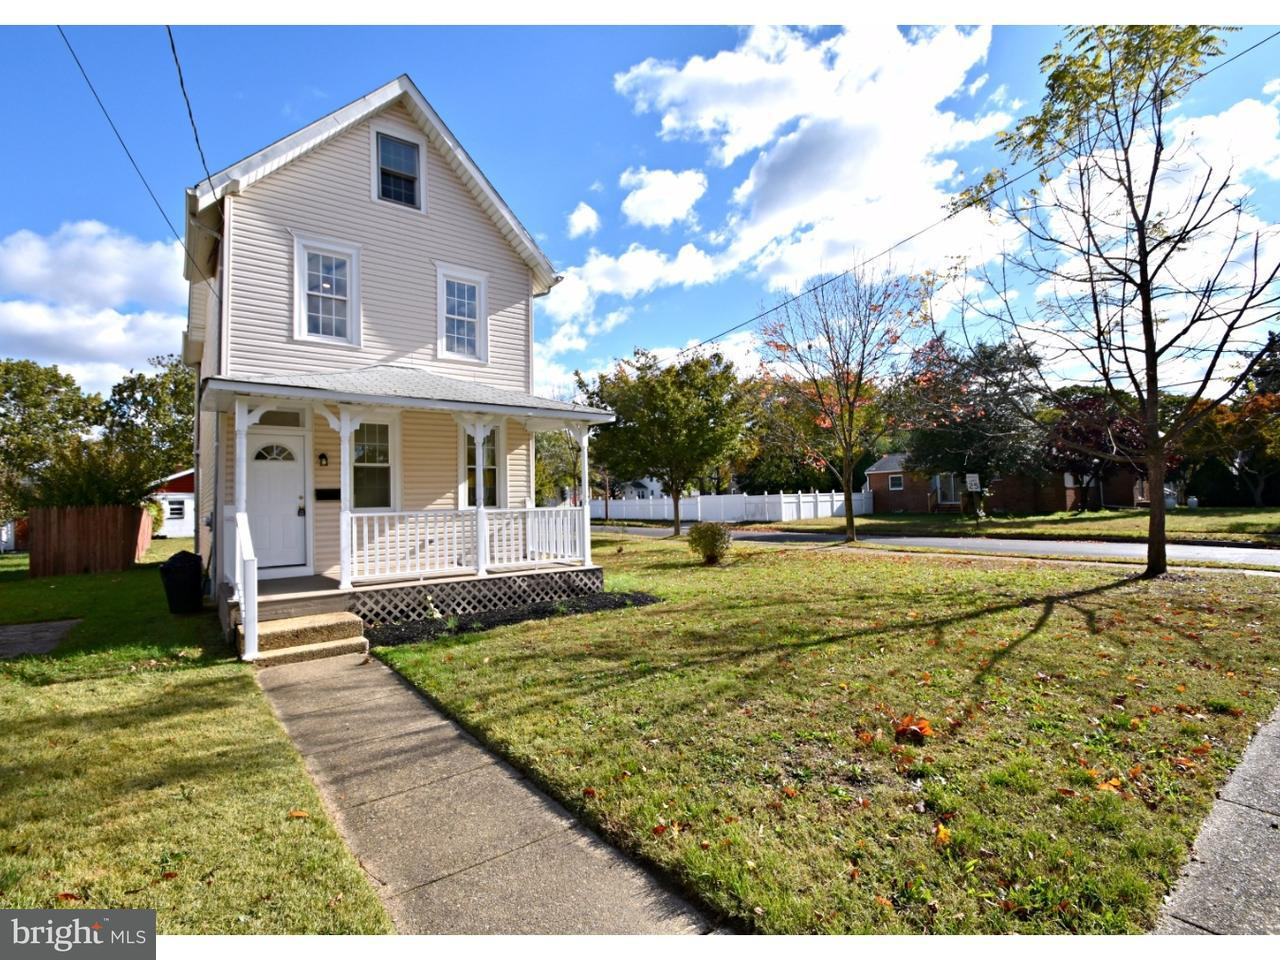 Single Family Home for Sale at 627 PENNSYLVANIA Avenue Palmyra, New Jersey 08065 United States